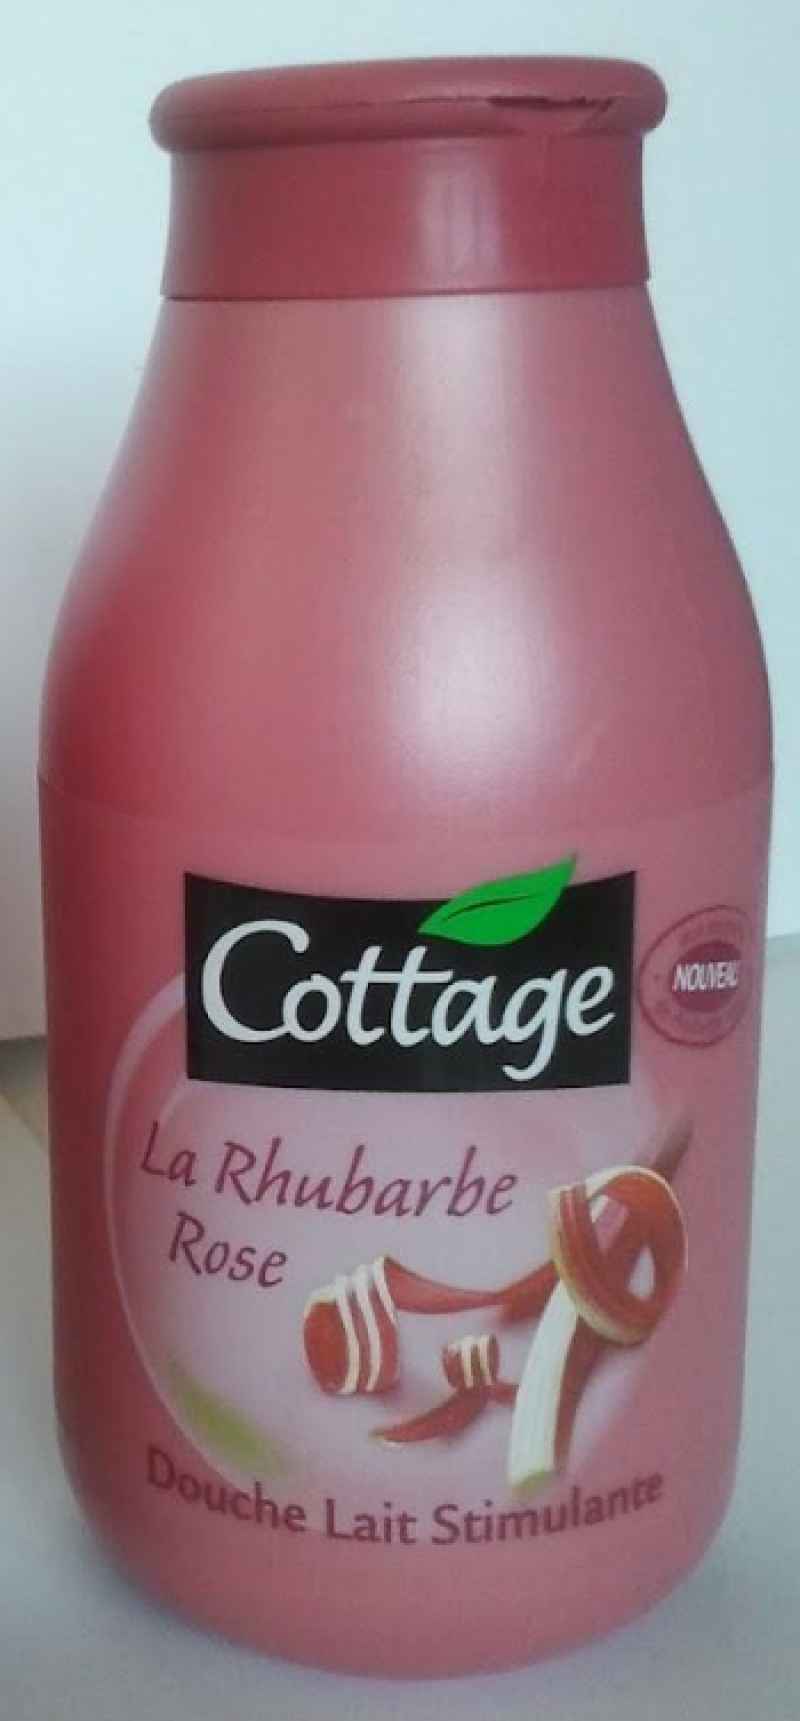 Swatch Douche Lait, Cottage